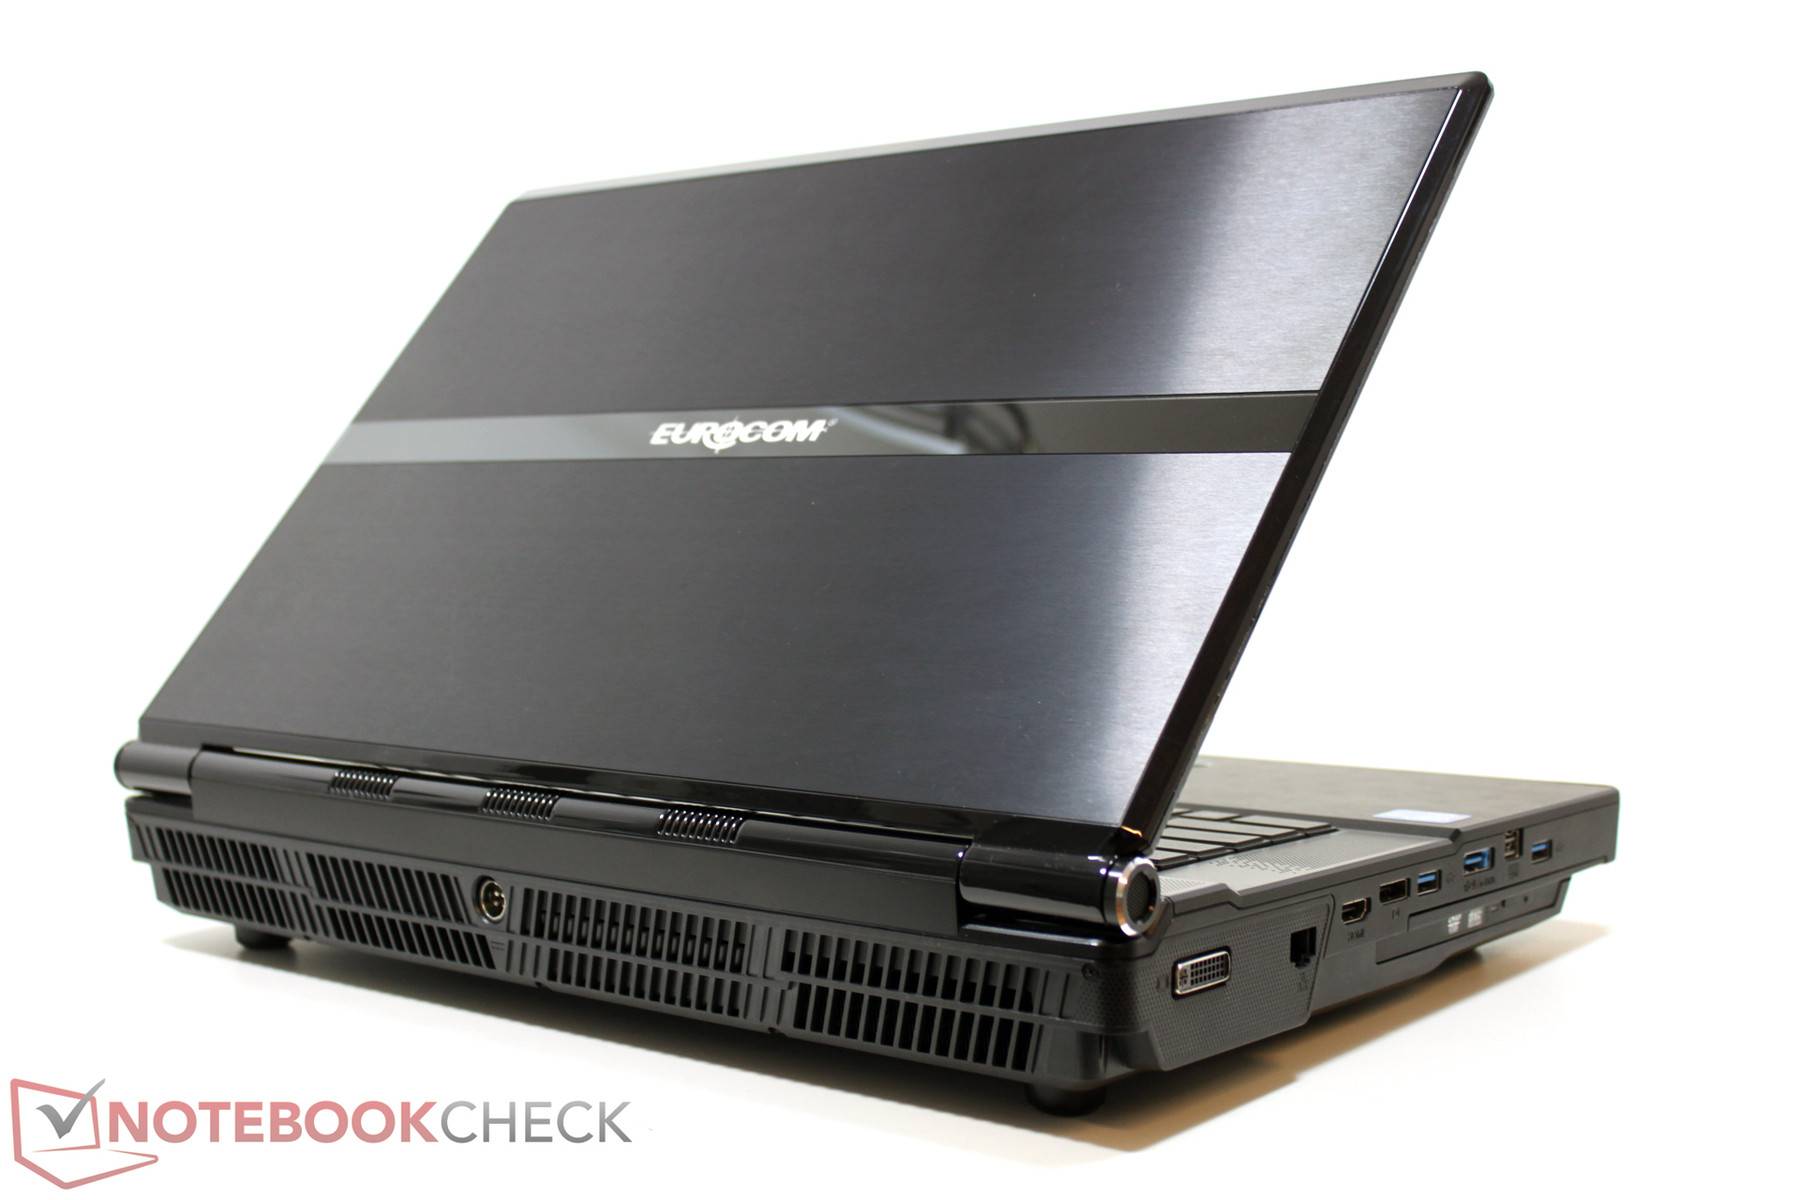 NEW DRIVERS: EUROCOM PANTHER 3.0 INTEL WLAN